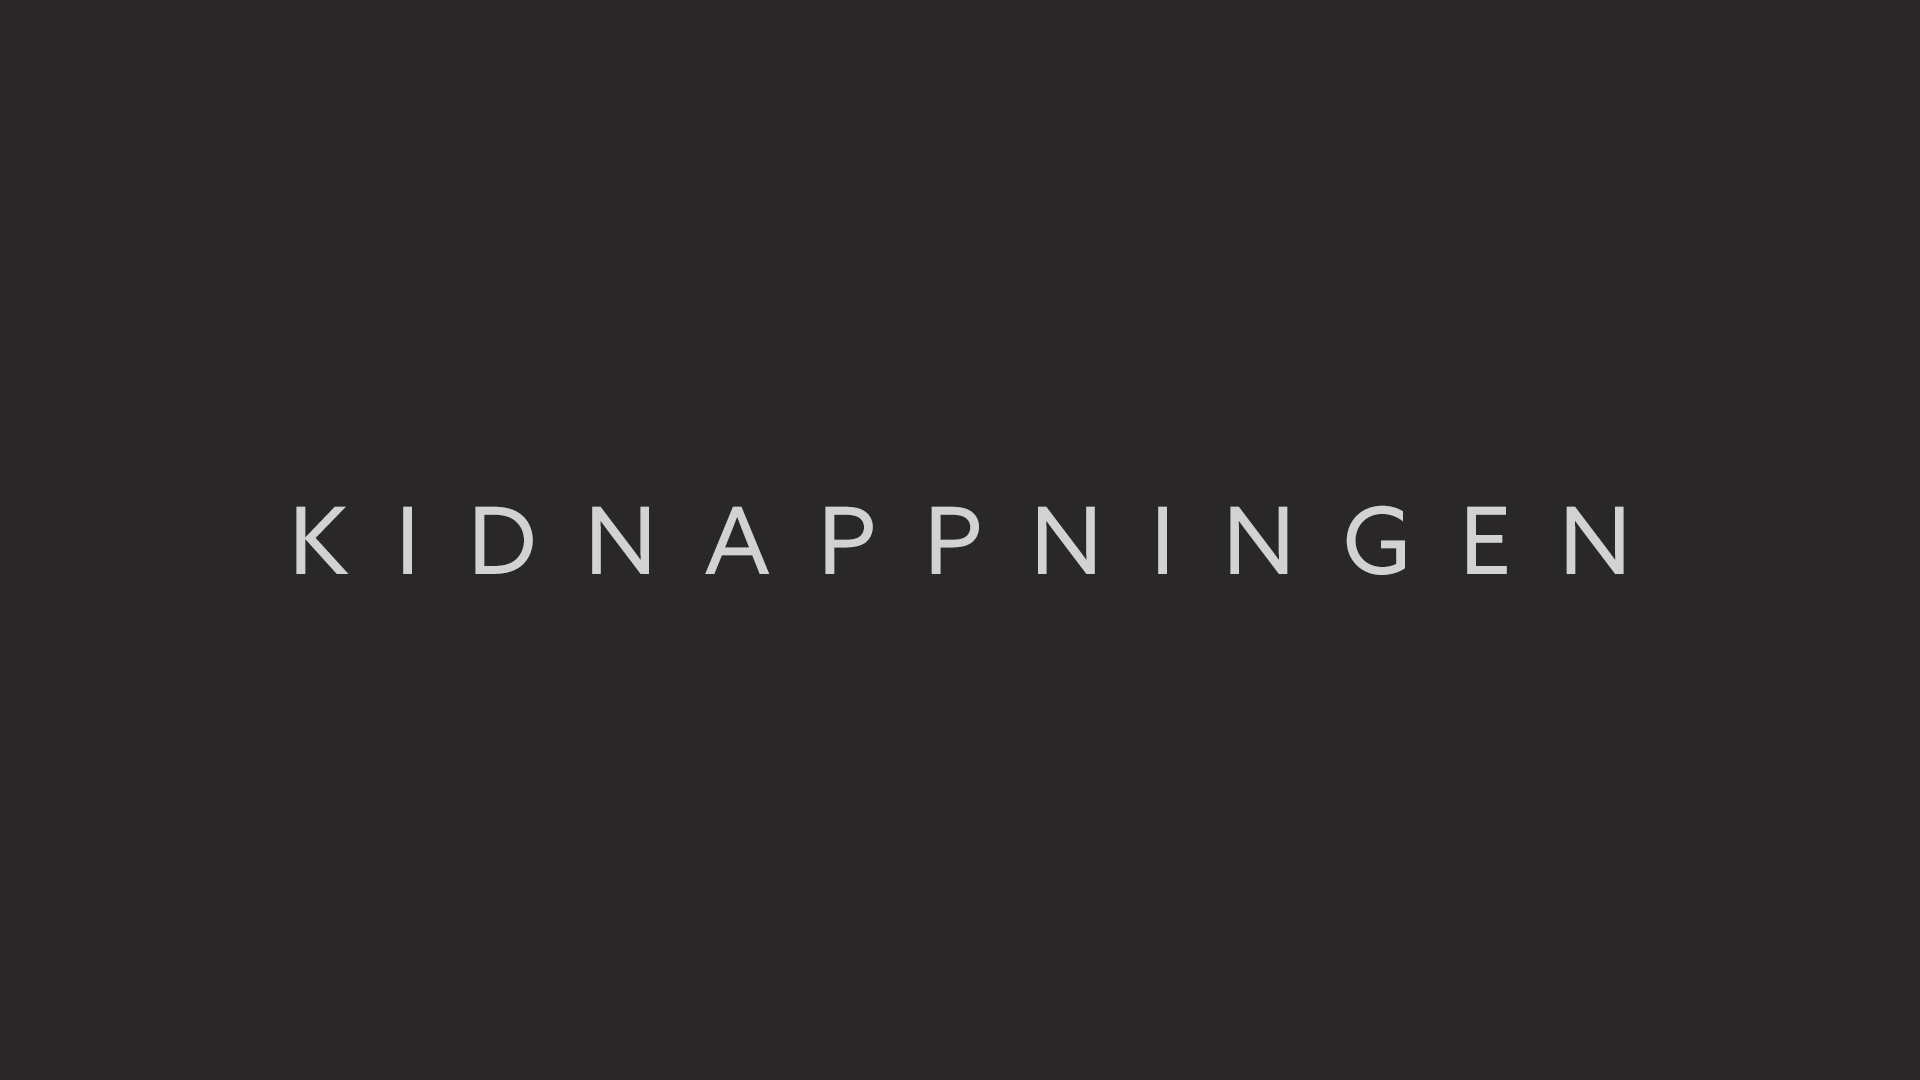 KIDNAPPNINGEN  (WORKING TITLE)  / FEATURE FILM   A Thriller / Drama feature film by director Alexis Almström and screenwriter Veronica Zacco.   Comissioned for script development.